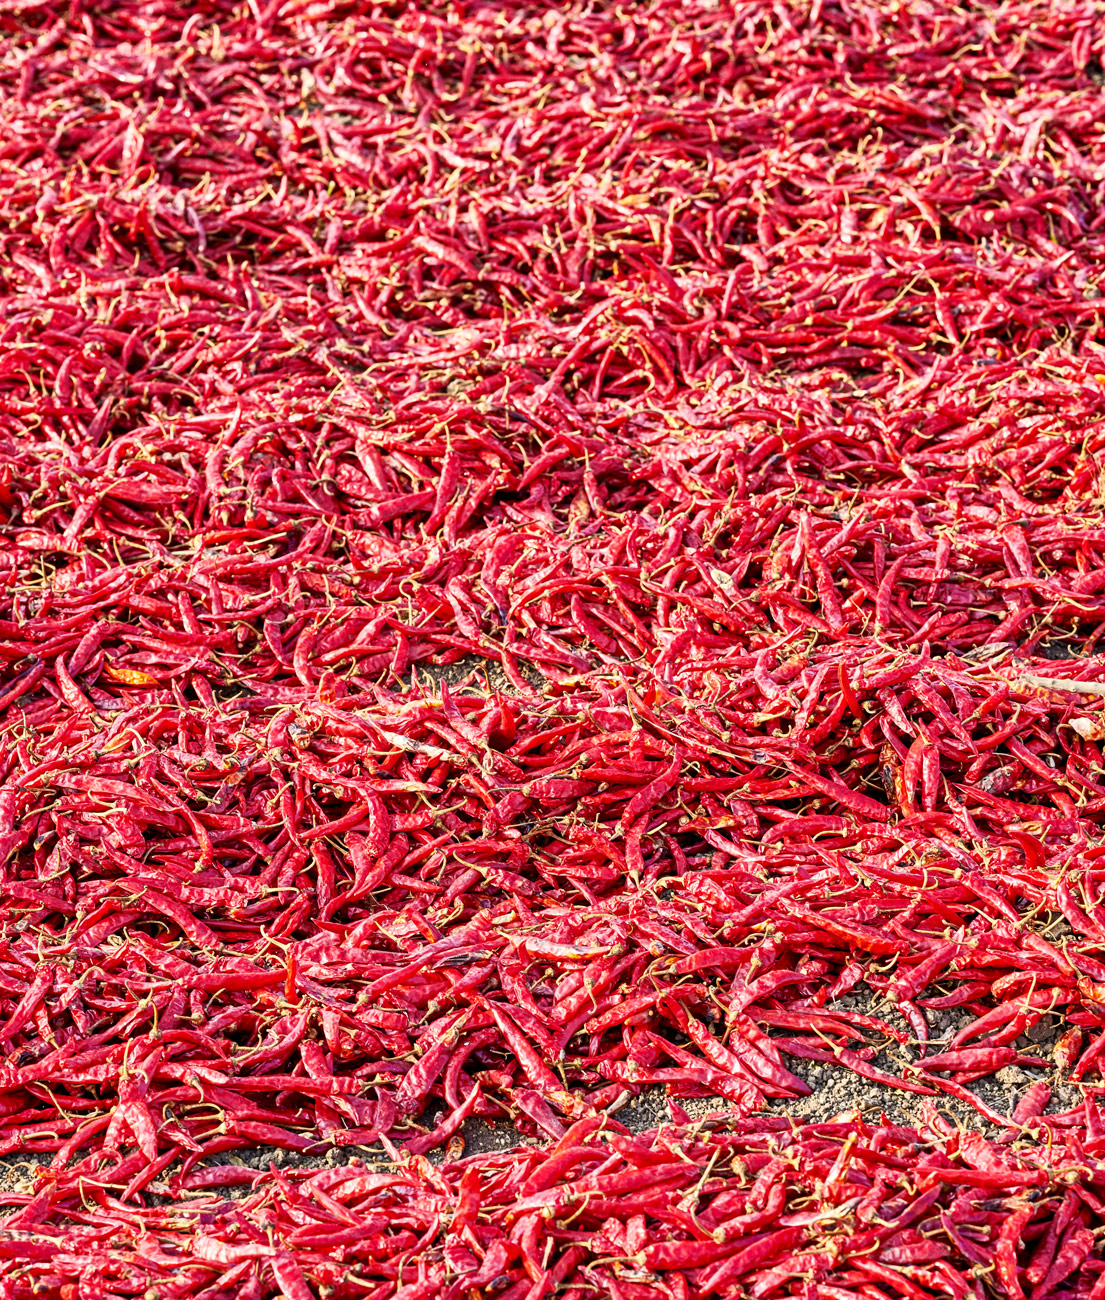 hot chiles peppers drying in the sun